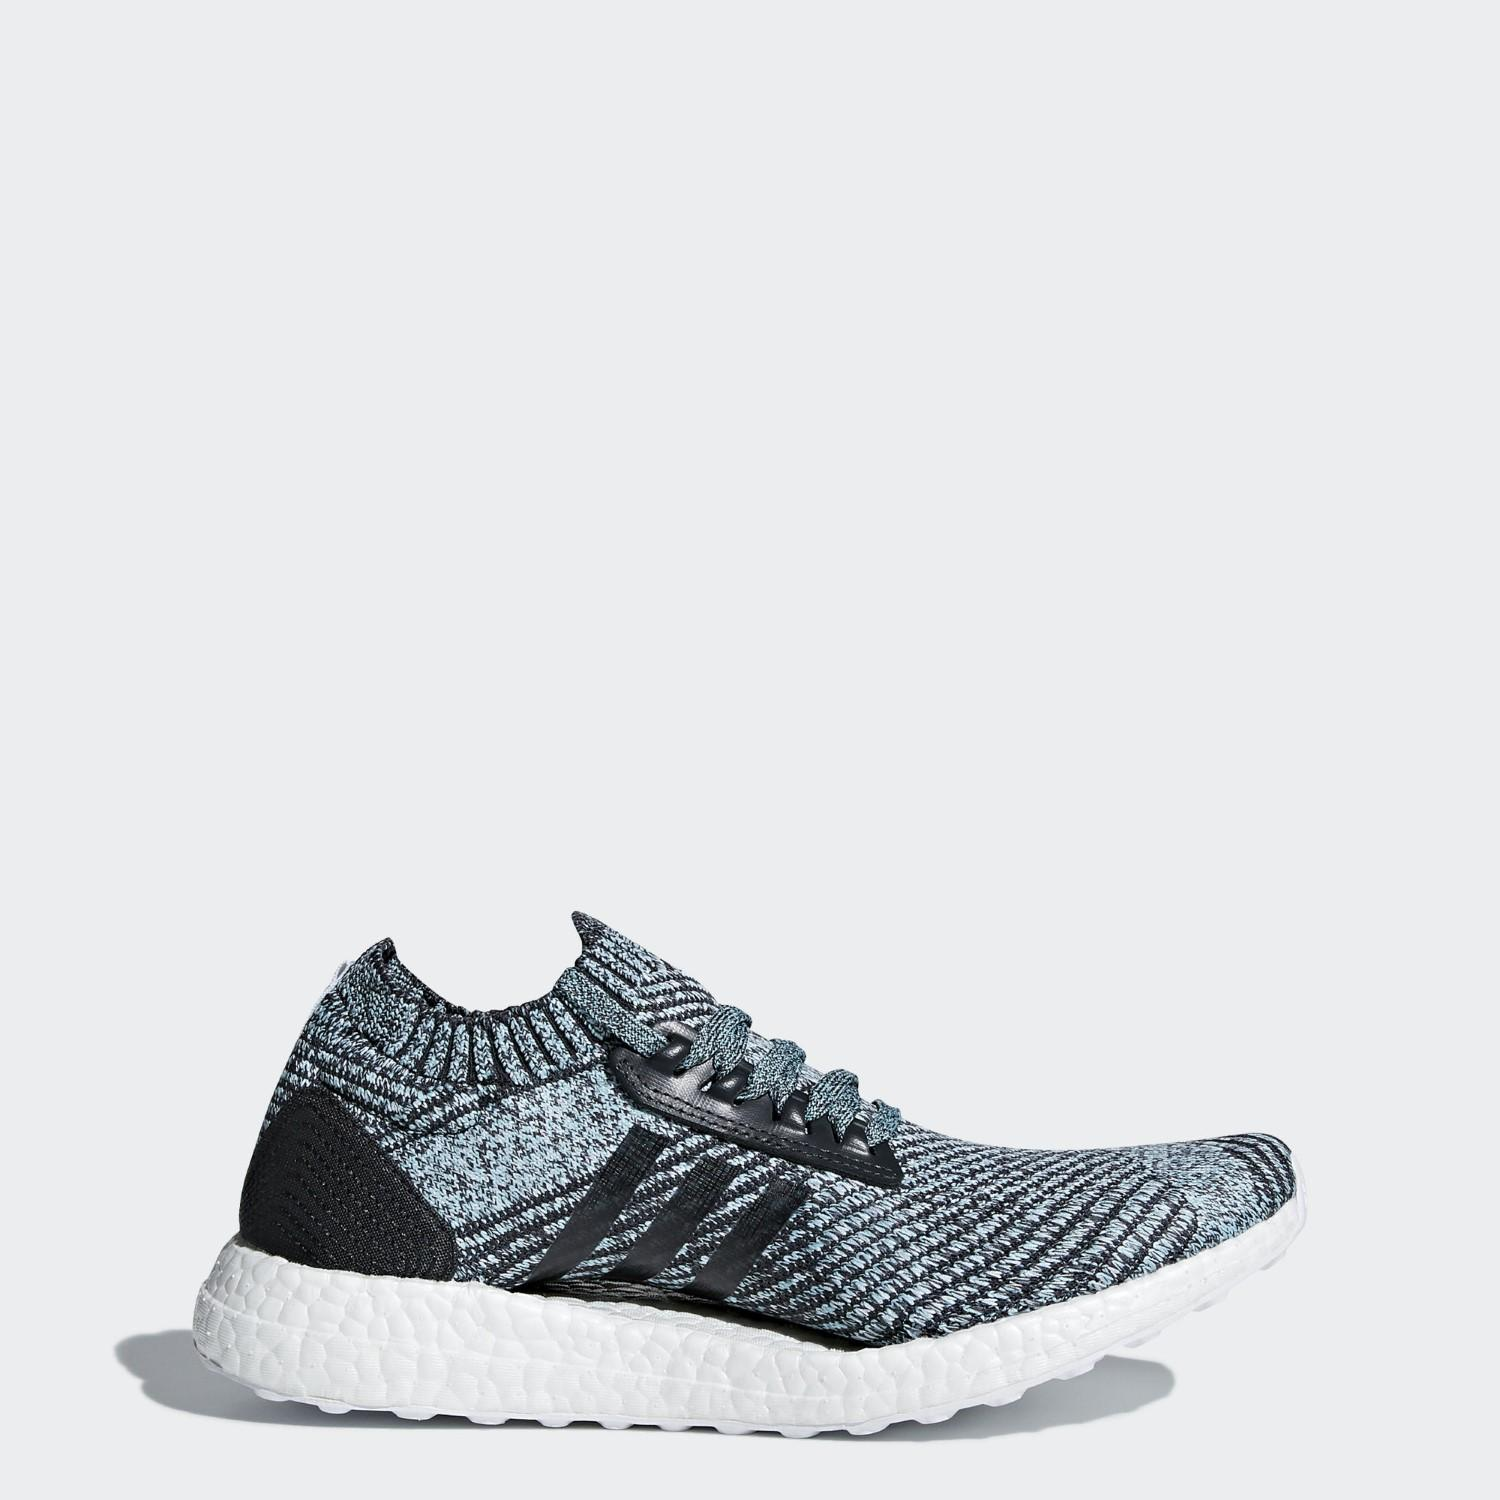 ef99cf7e4d6 Lyst - adidas Ultraboost X Parley Shoes - Save 51%